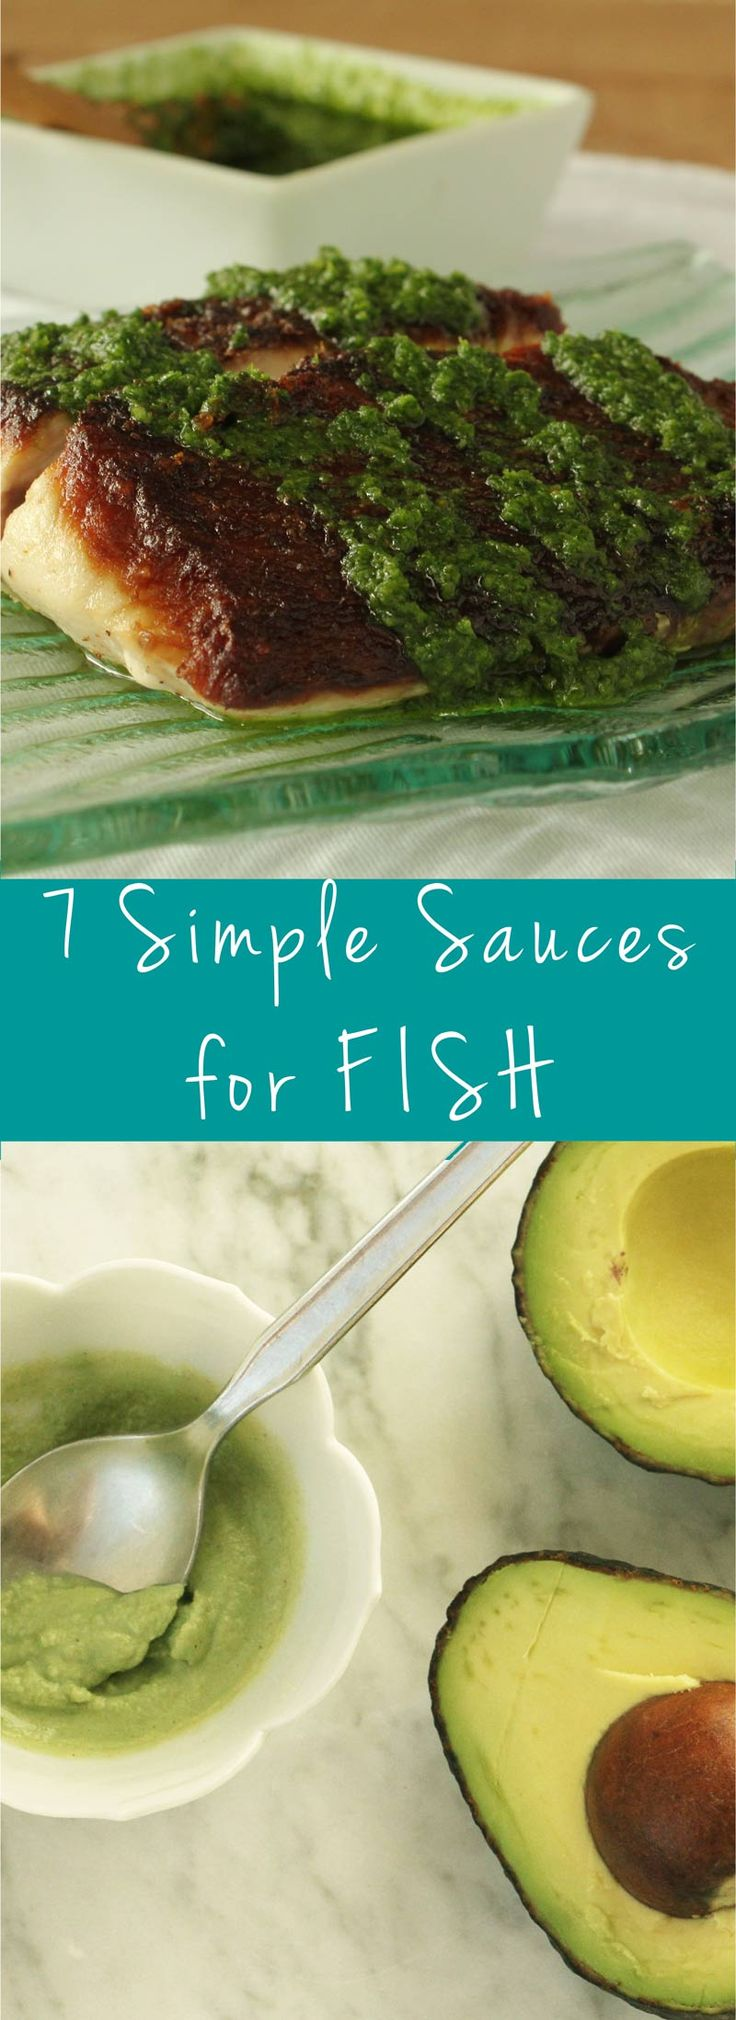 249 best Seafood, General images on Pinterest | Fish, Pisces and ...